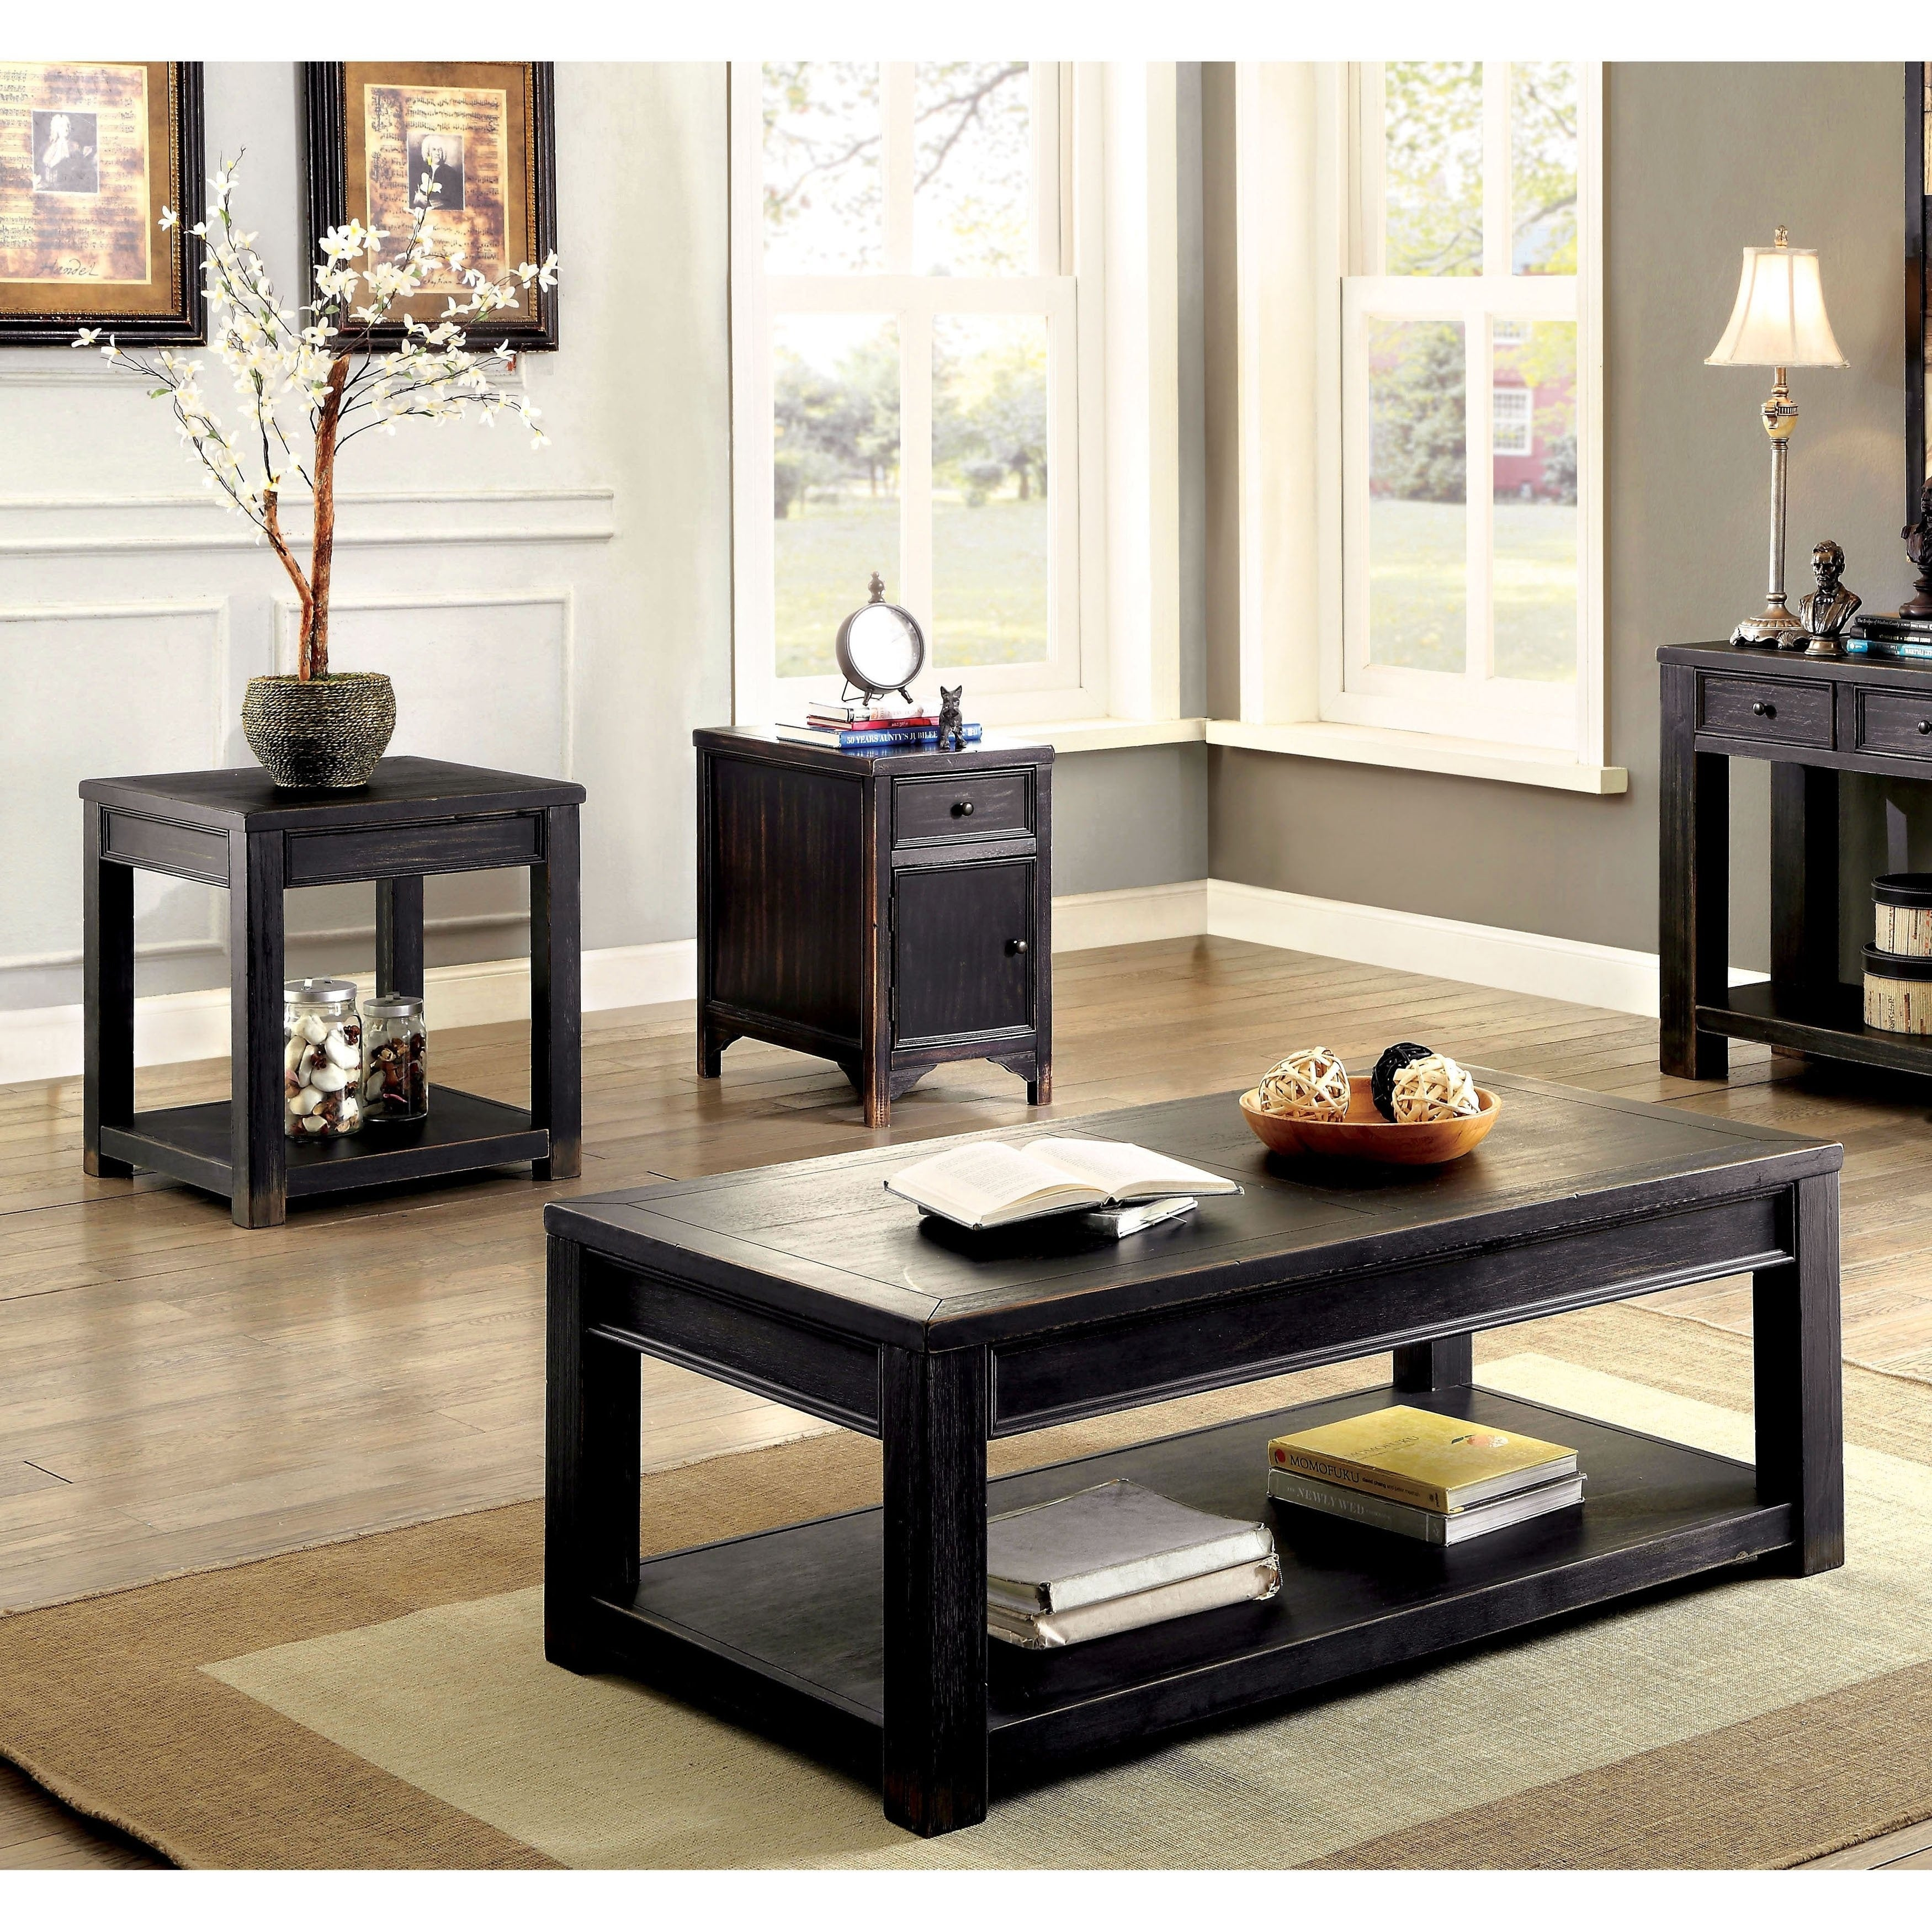 Transitional Coffee Table Sets 5